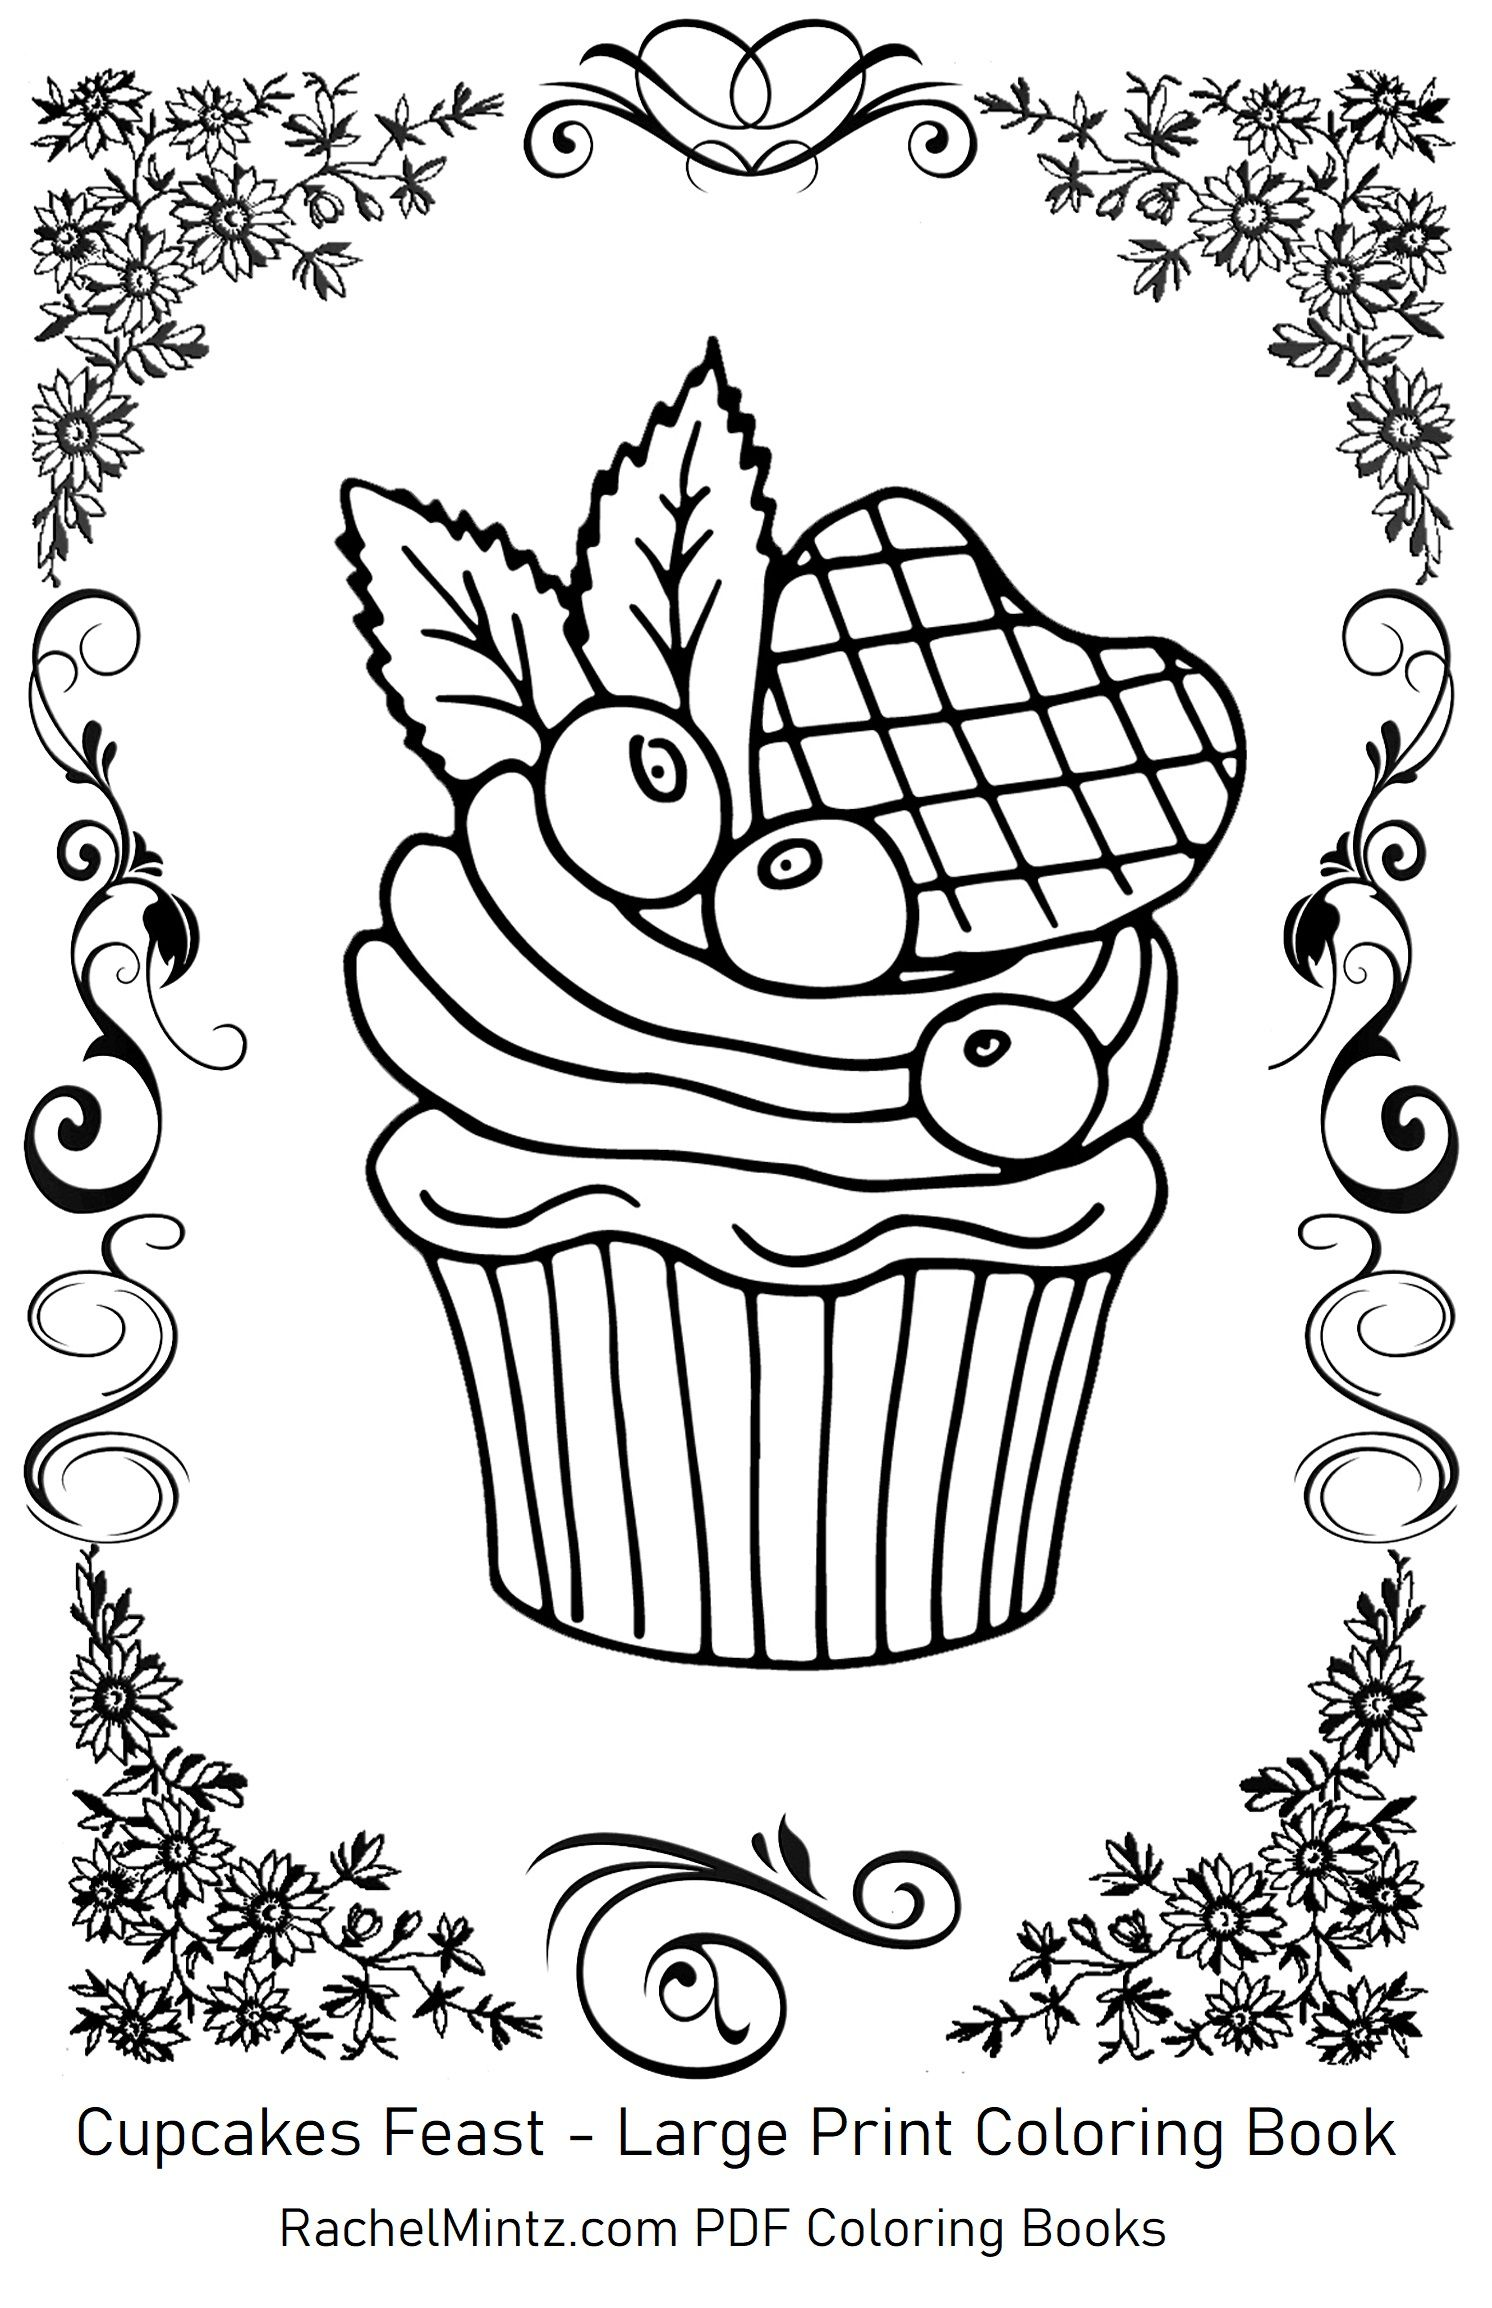 Large Print Cupcakes Coloring Pages In 2020 Coloring Books Cupcake Coloring Pages Coloring Pages